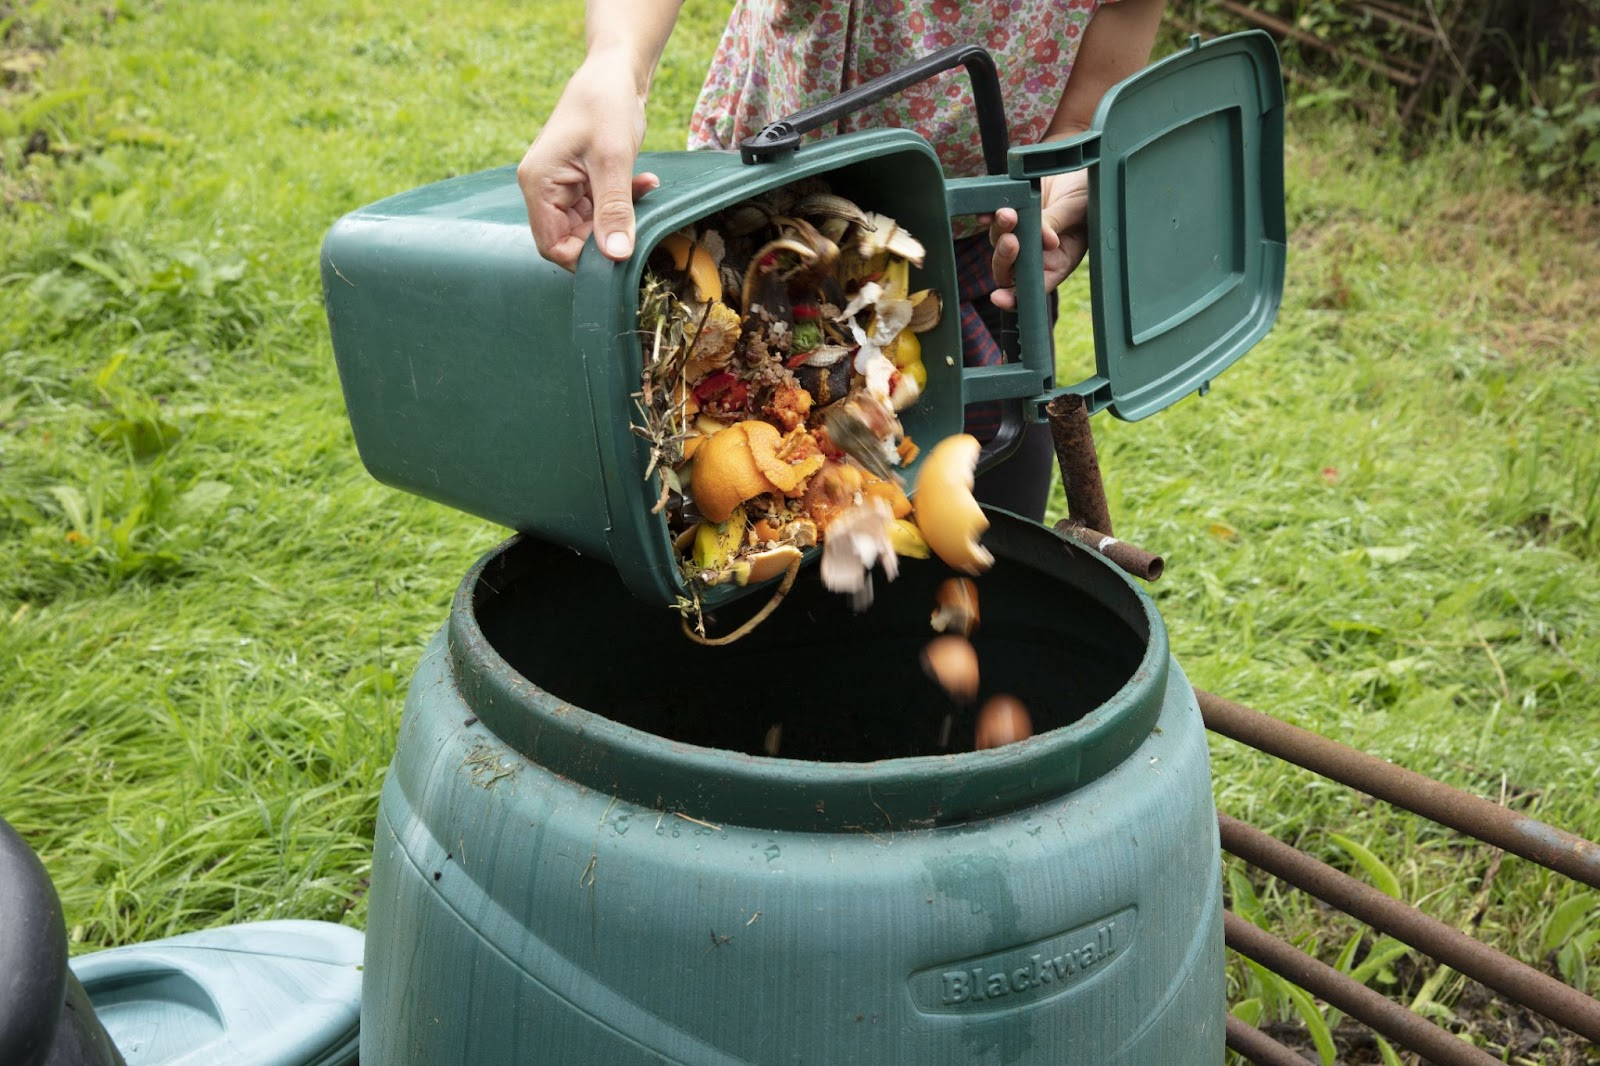 Image of food scabs being dumped into a compost bin.